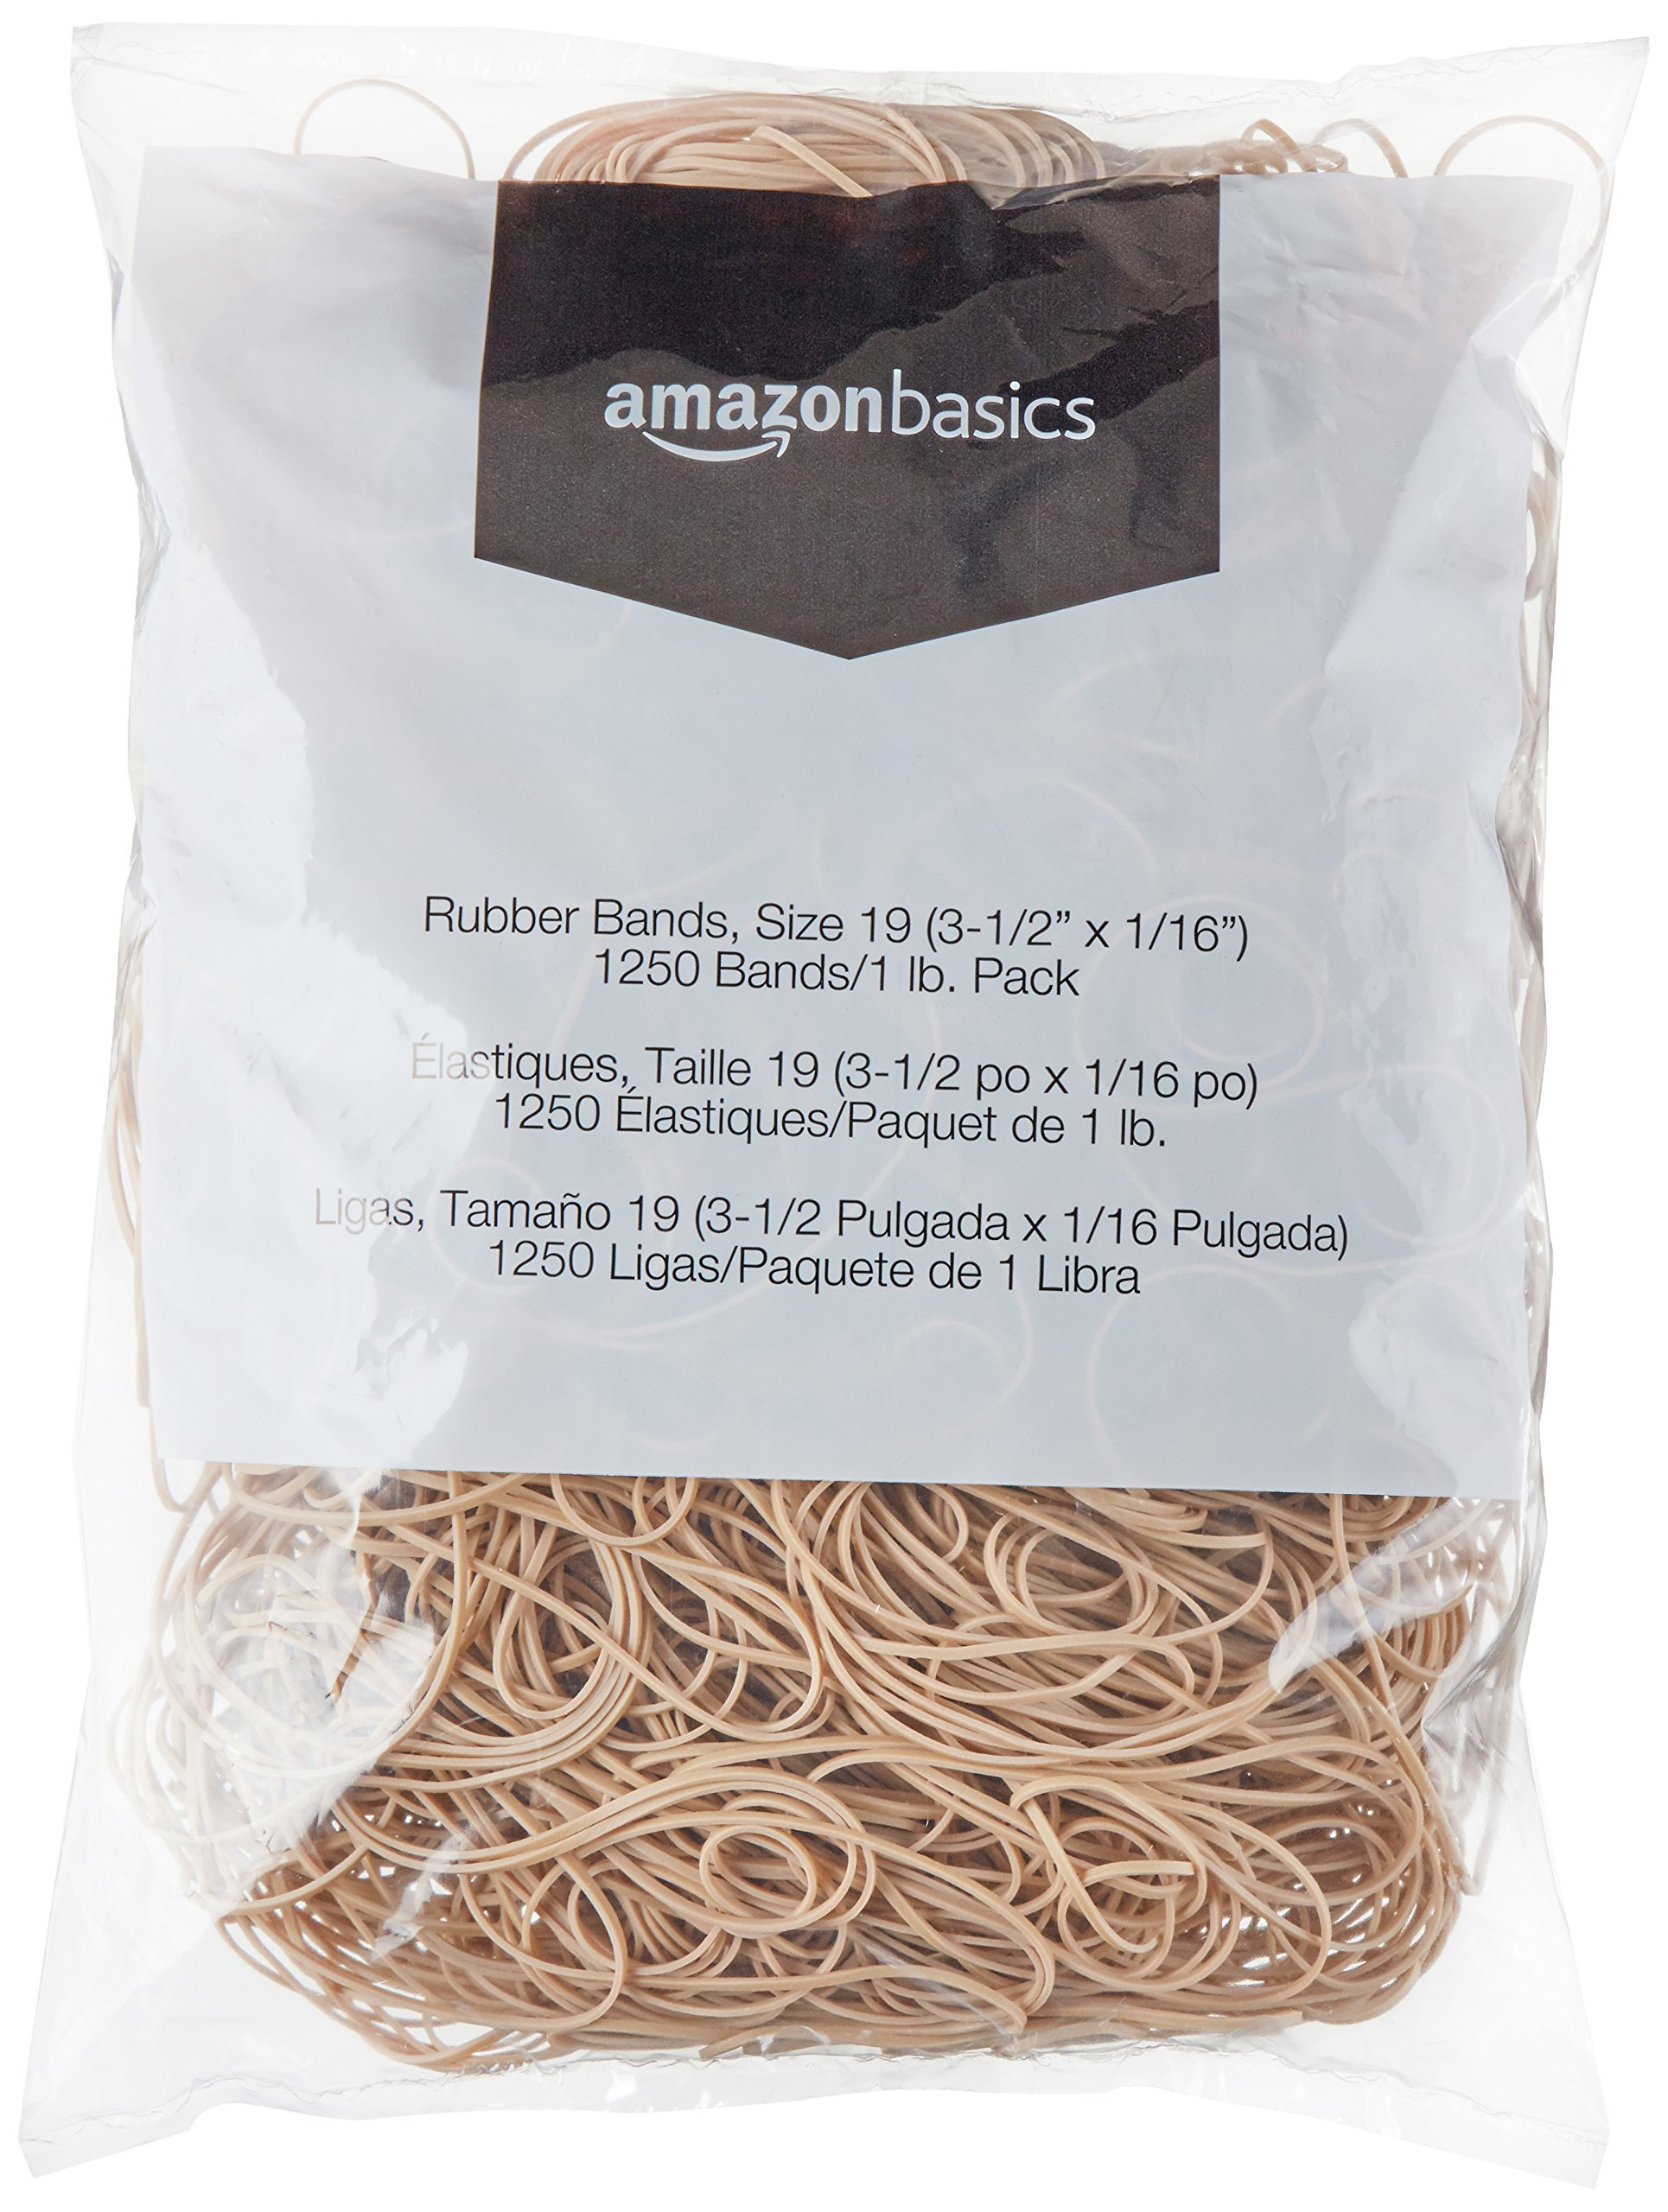 AmazonBasics Rubber Bands, Size 19 (3-1/2'' x 1/16''), 1250 Bands/1 lb. Pack, 3-Pack